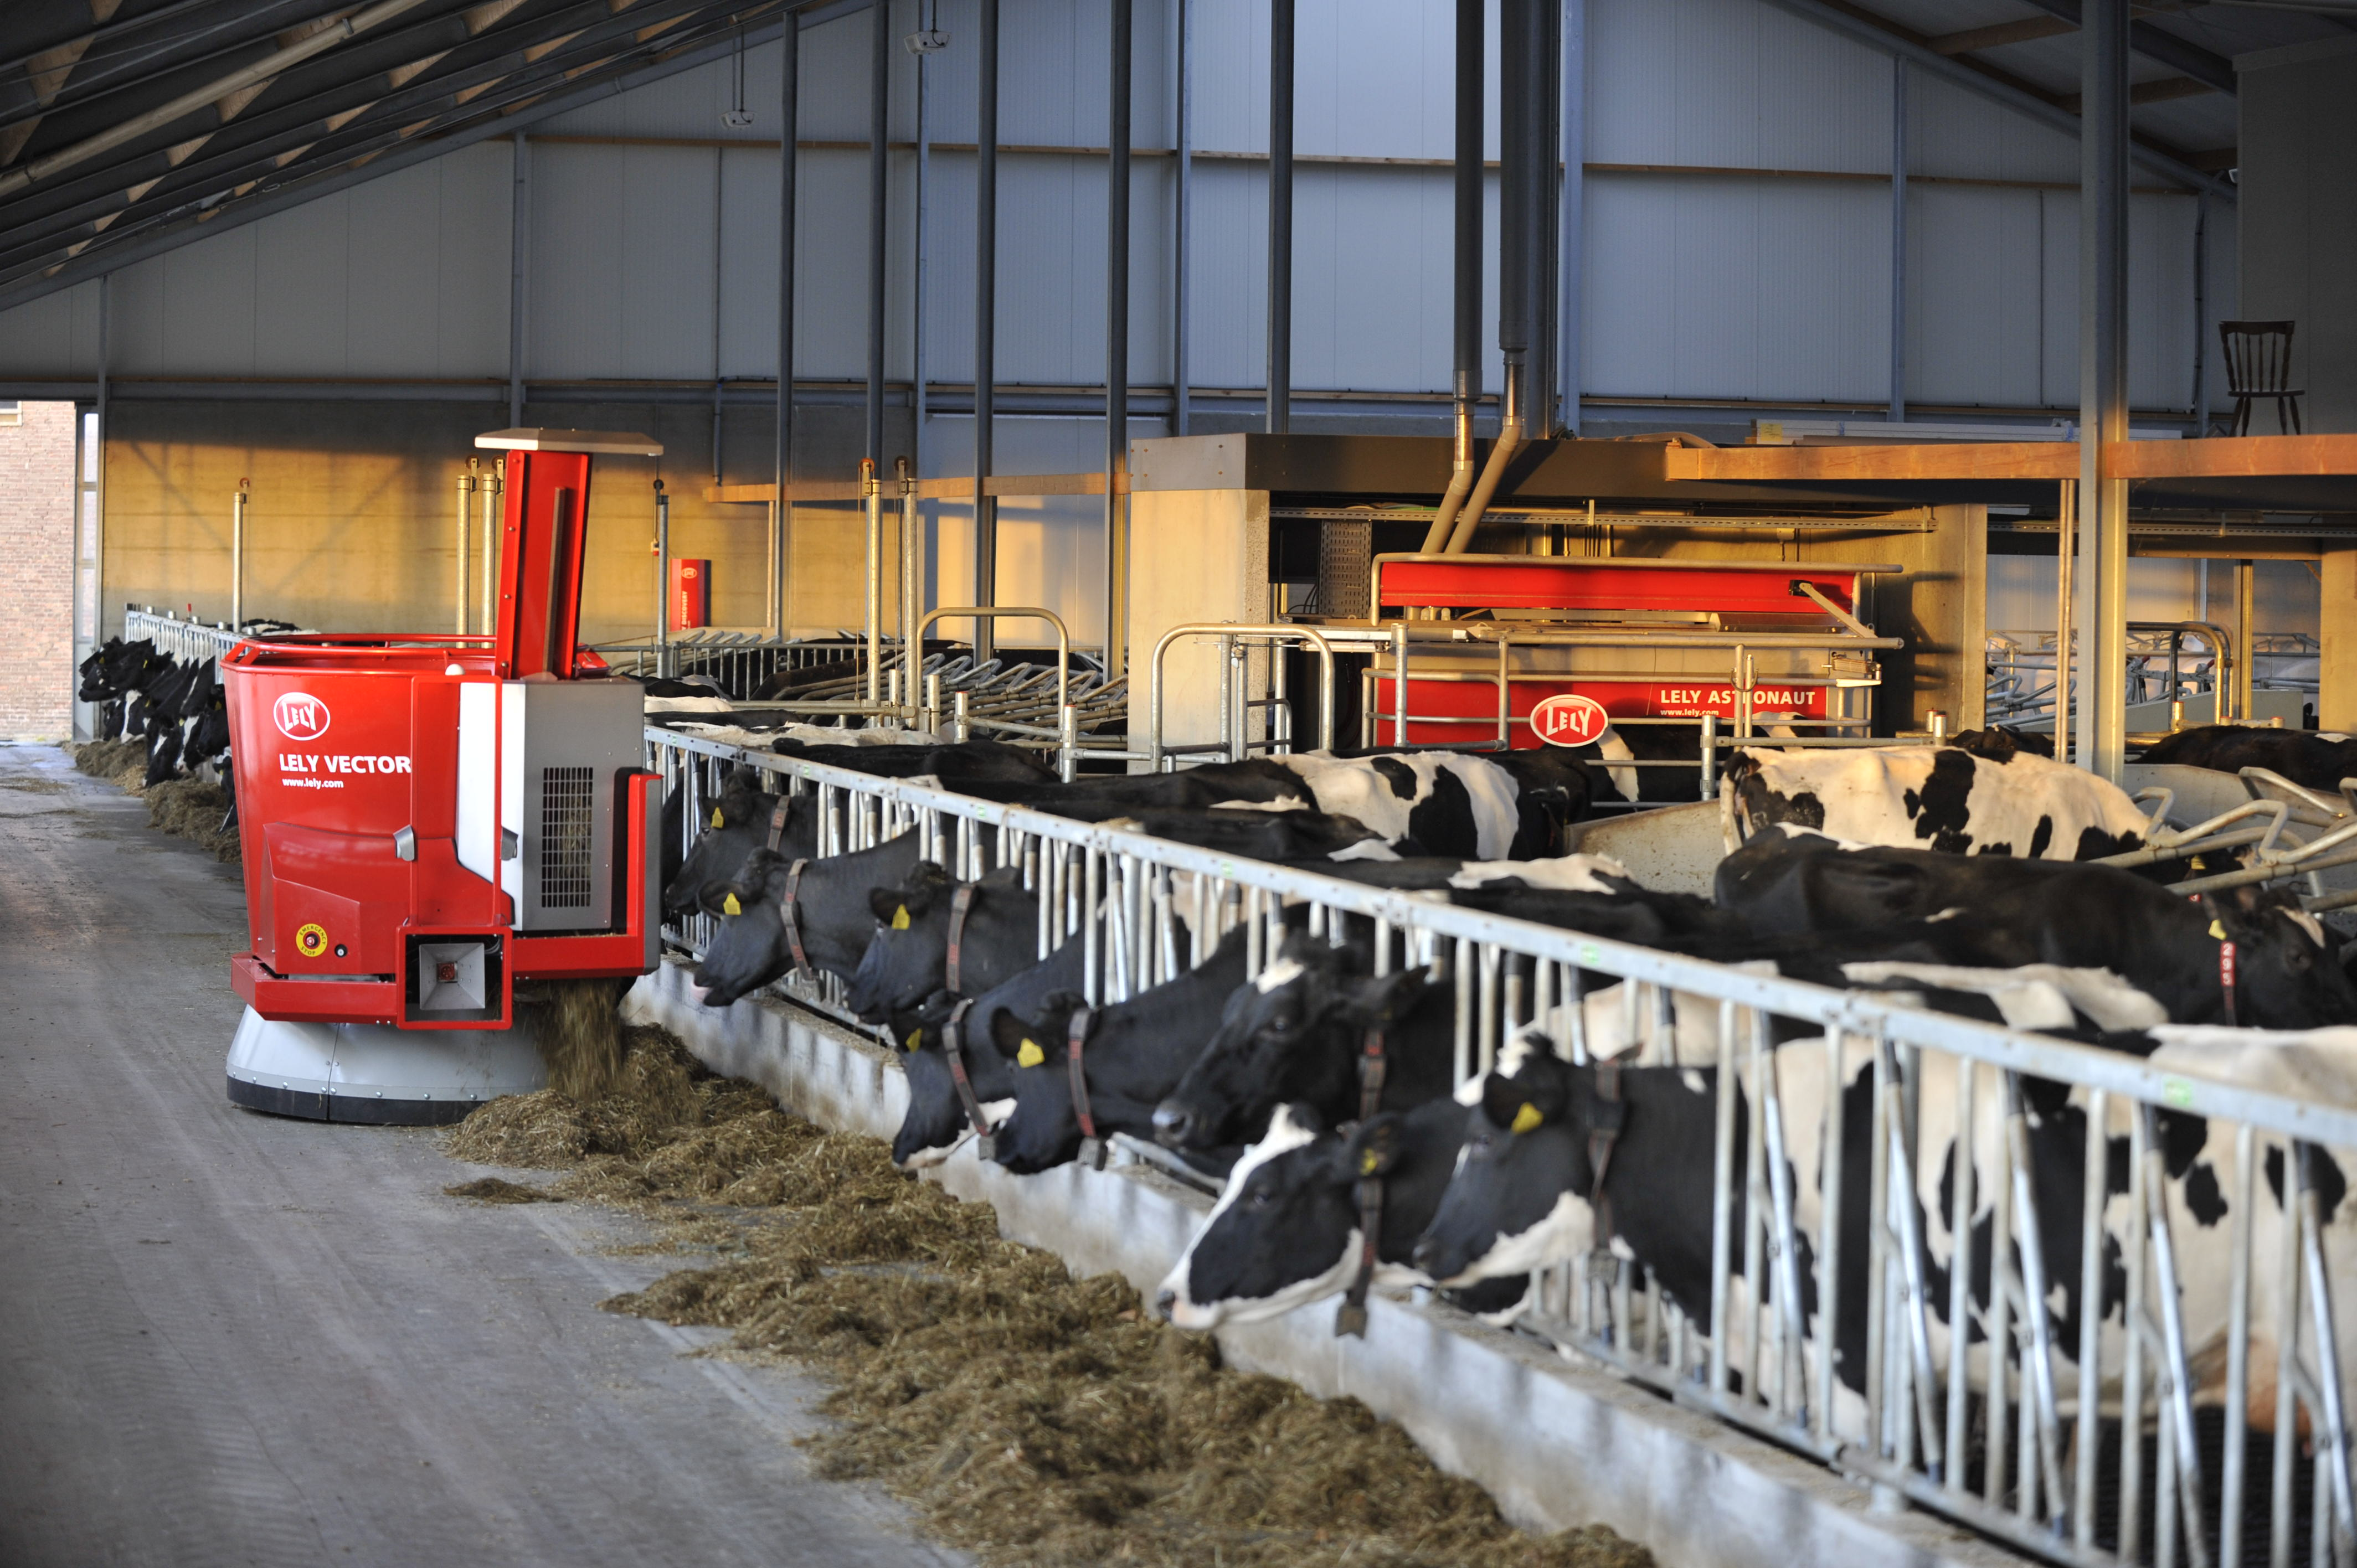 The grand prize winner of the 2018 The Way to Dairy Award will choose an Astronaut milking robot or a Vector automatic feeding system